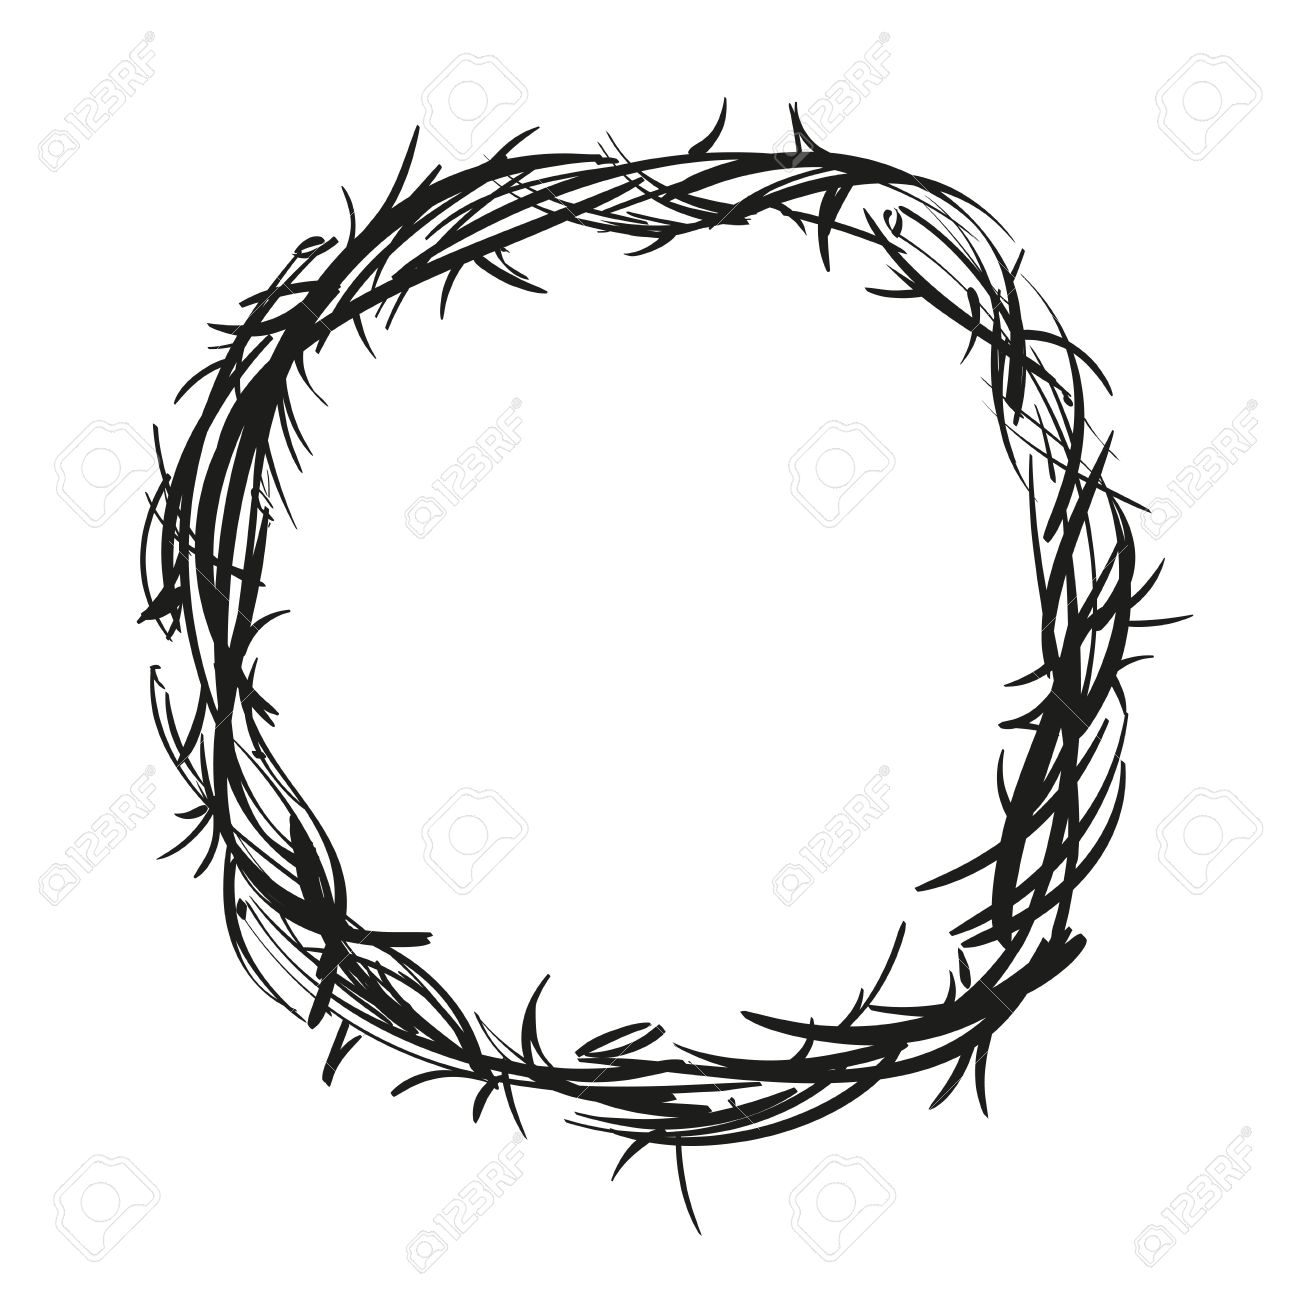 crown of thorns royalty free cliparts vectors and stock rh 123rf com crown of thorns vector image Crown of Thorns Clip Art